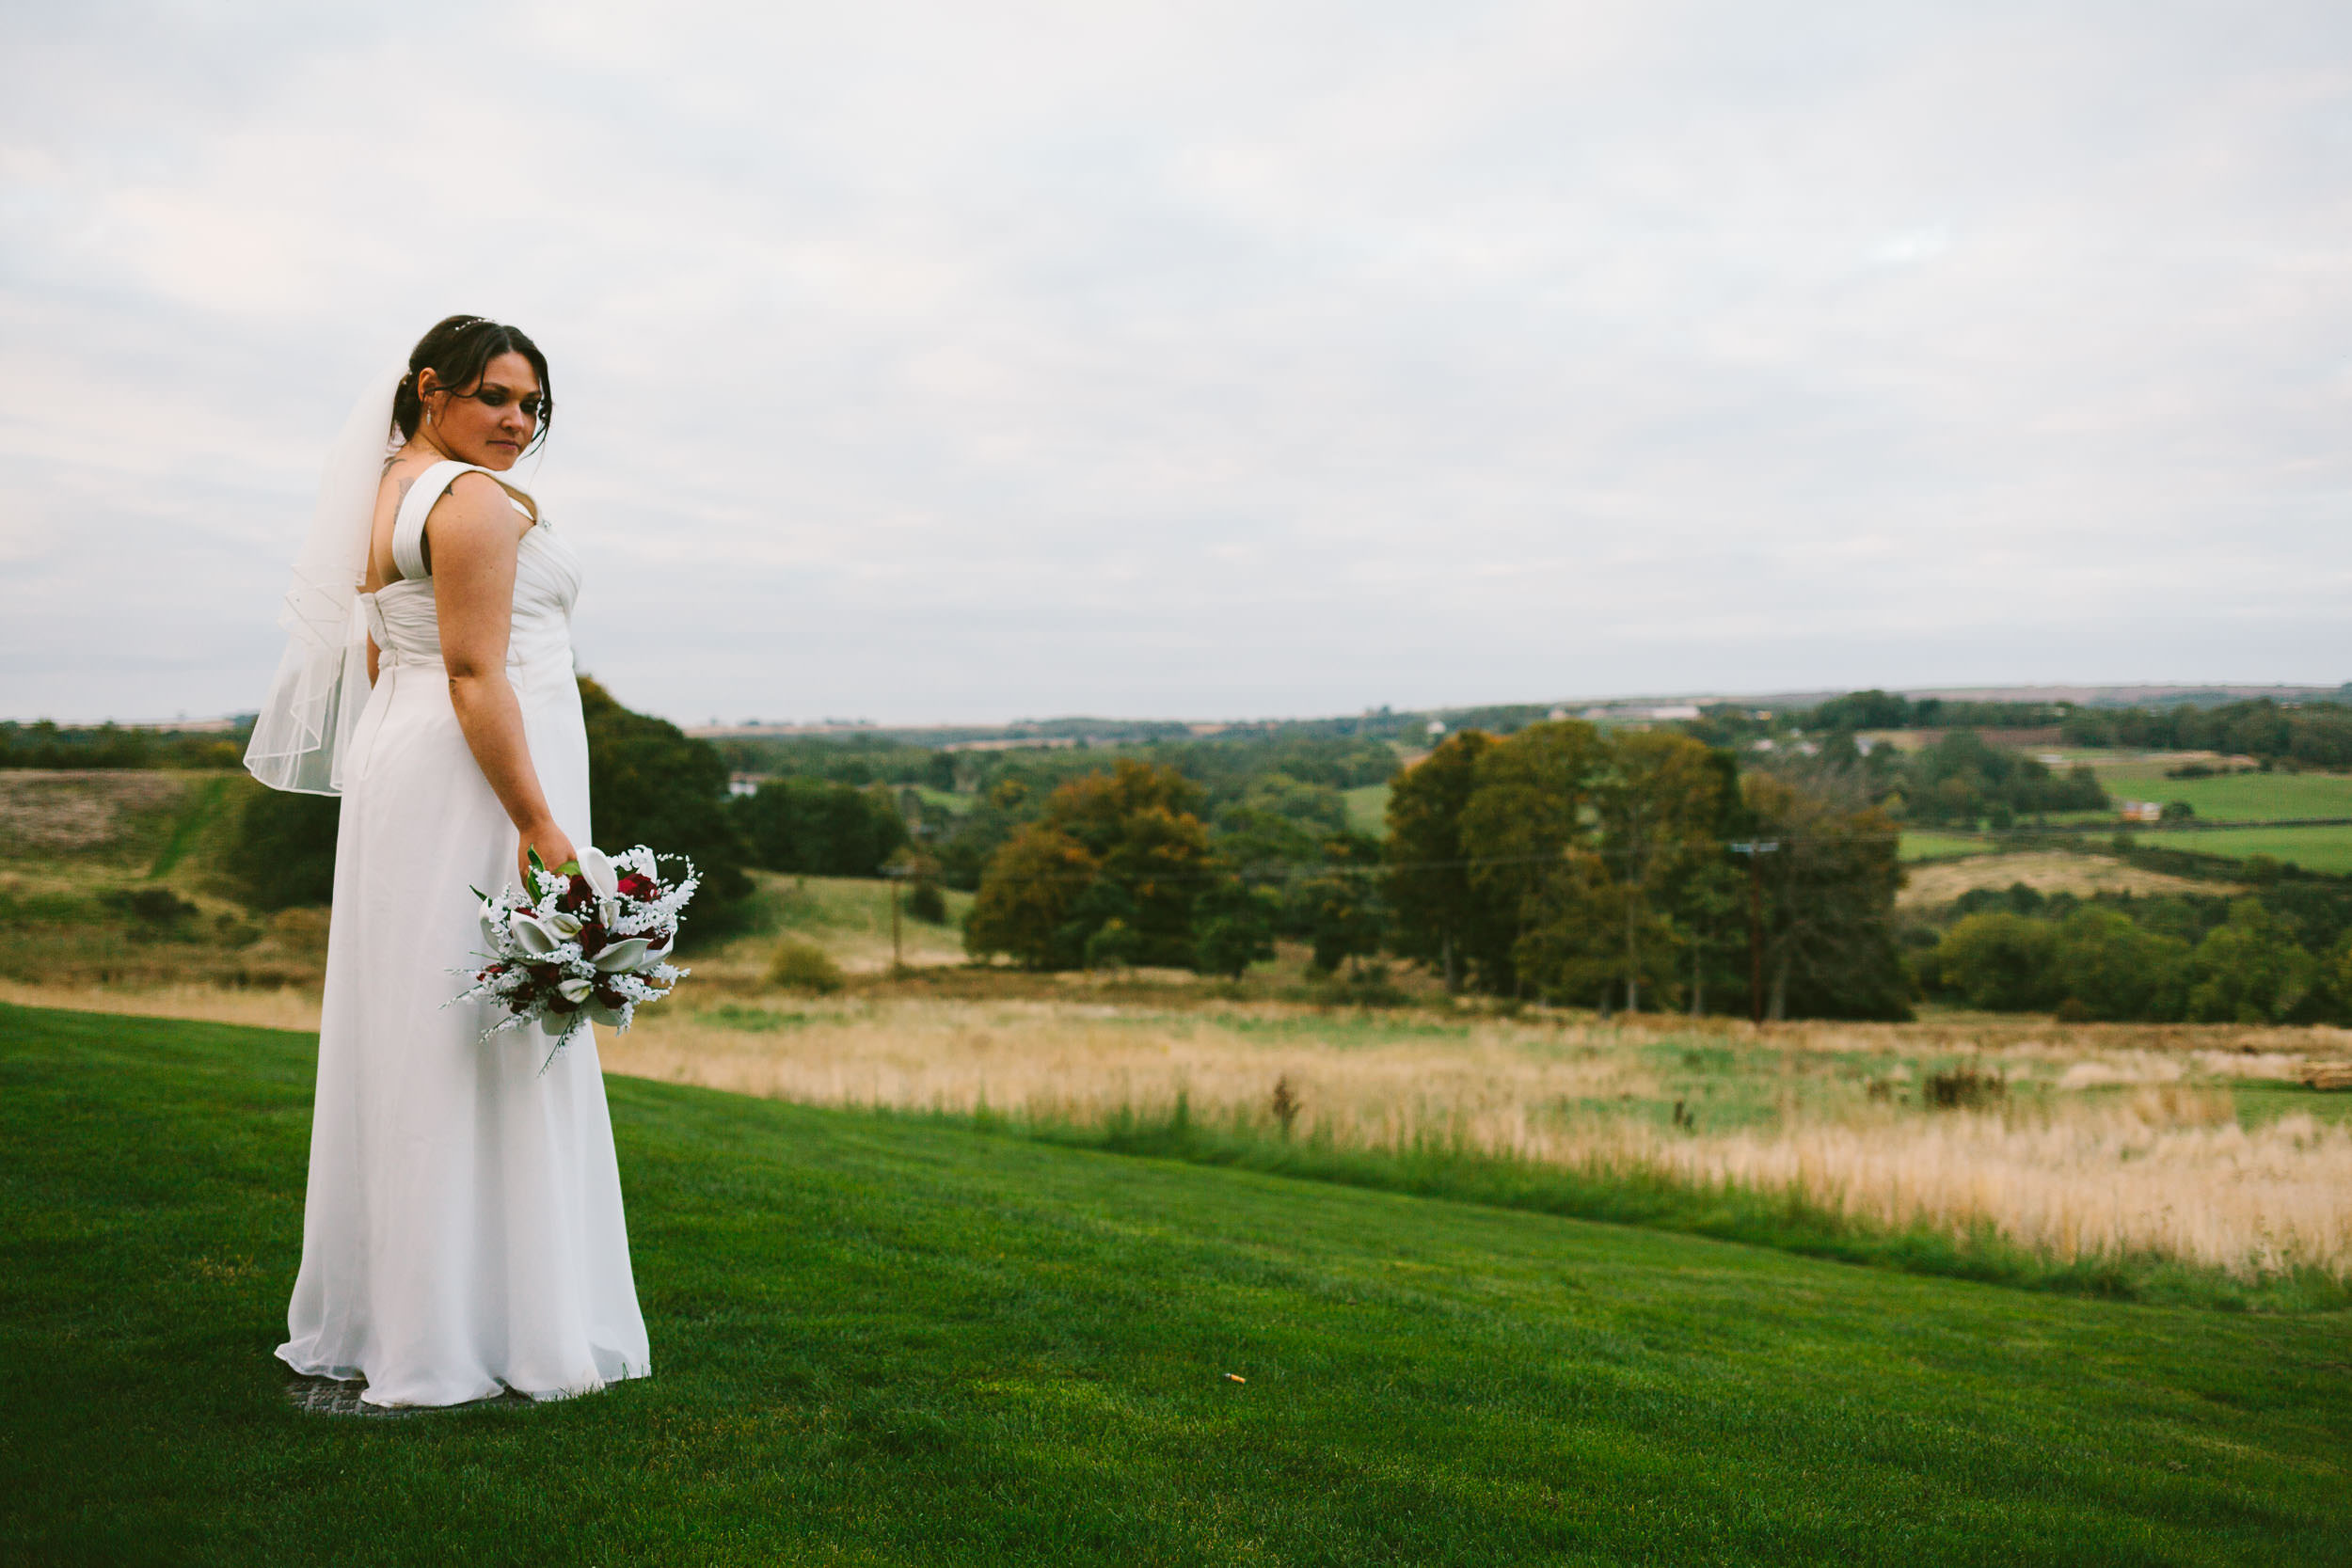 Bride poses with flowers in front of green valley